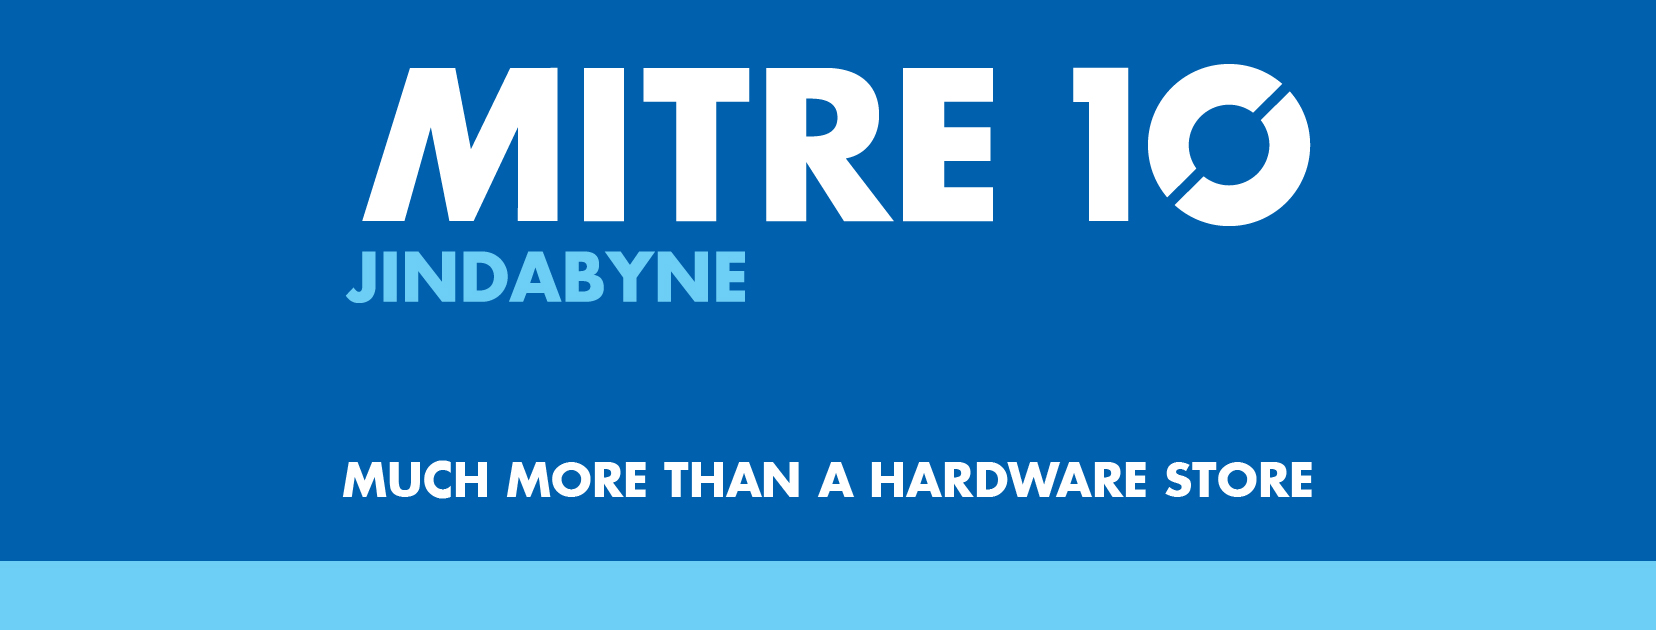 mitre 10 jindabyne much more than a hardware store mitre 10